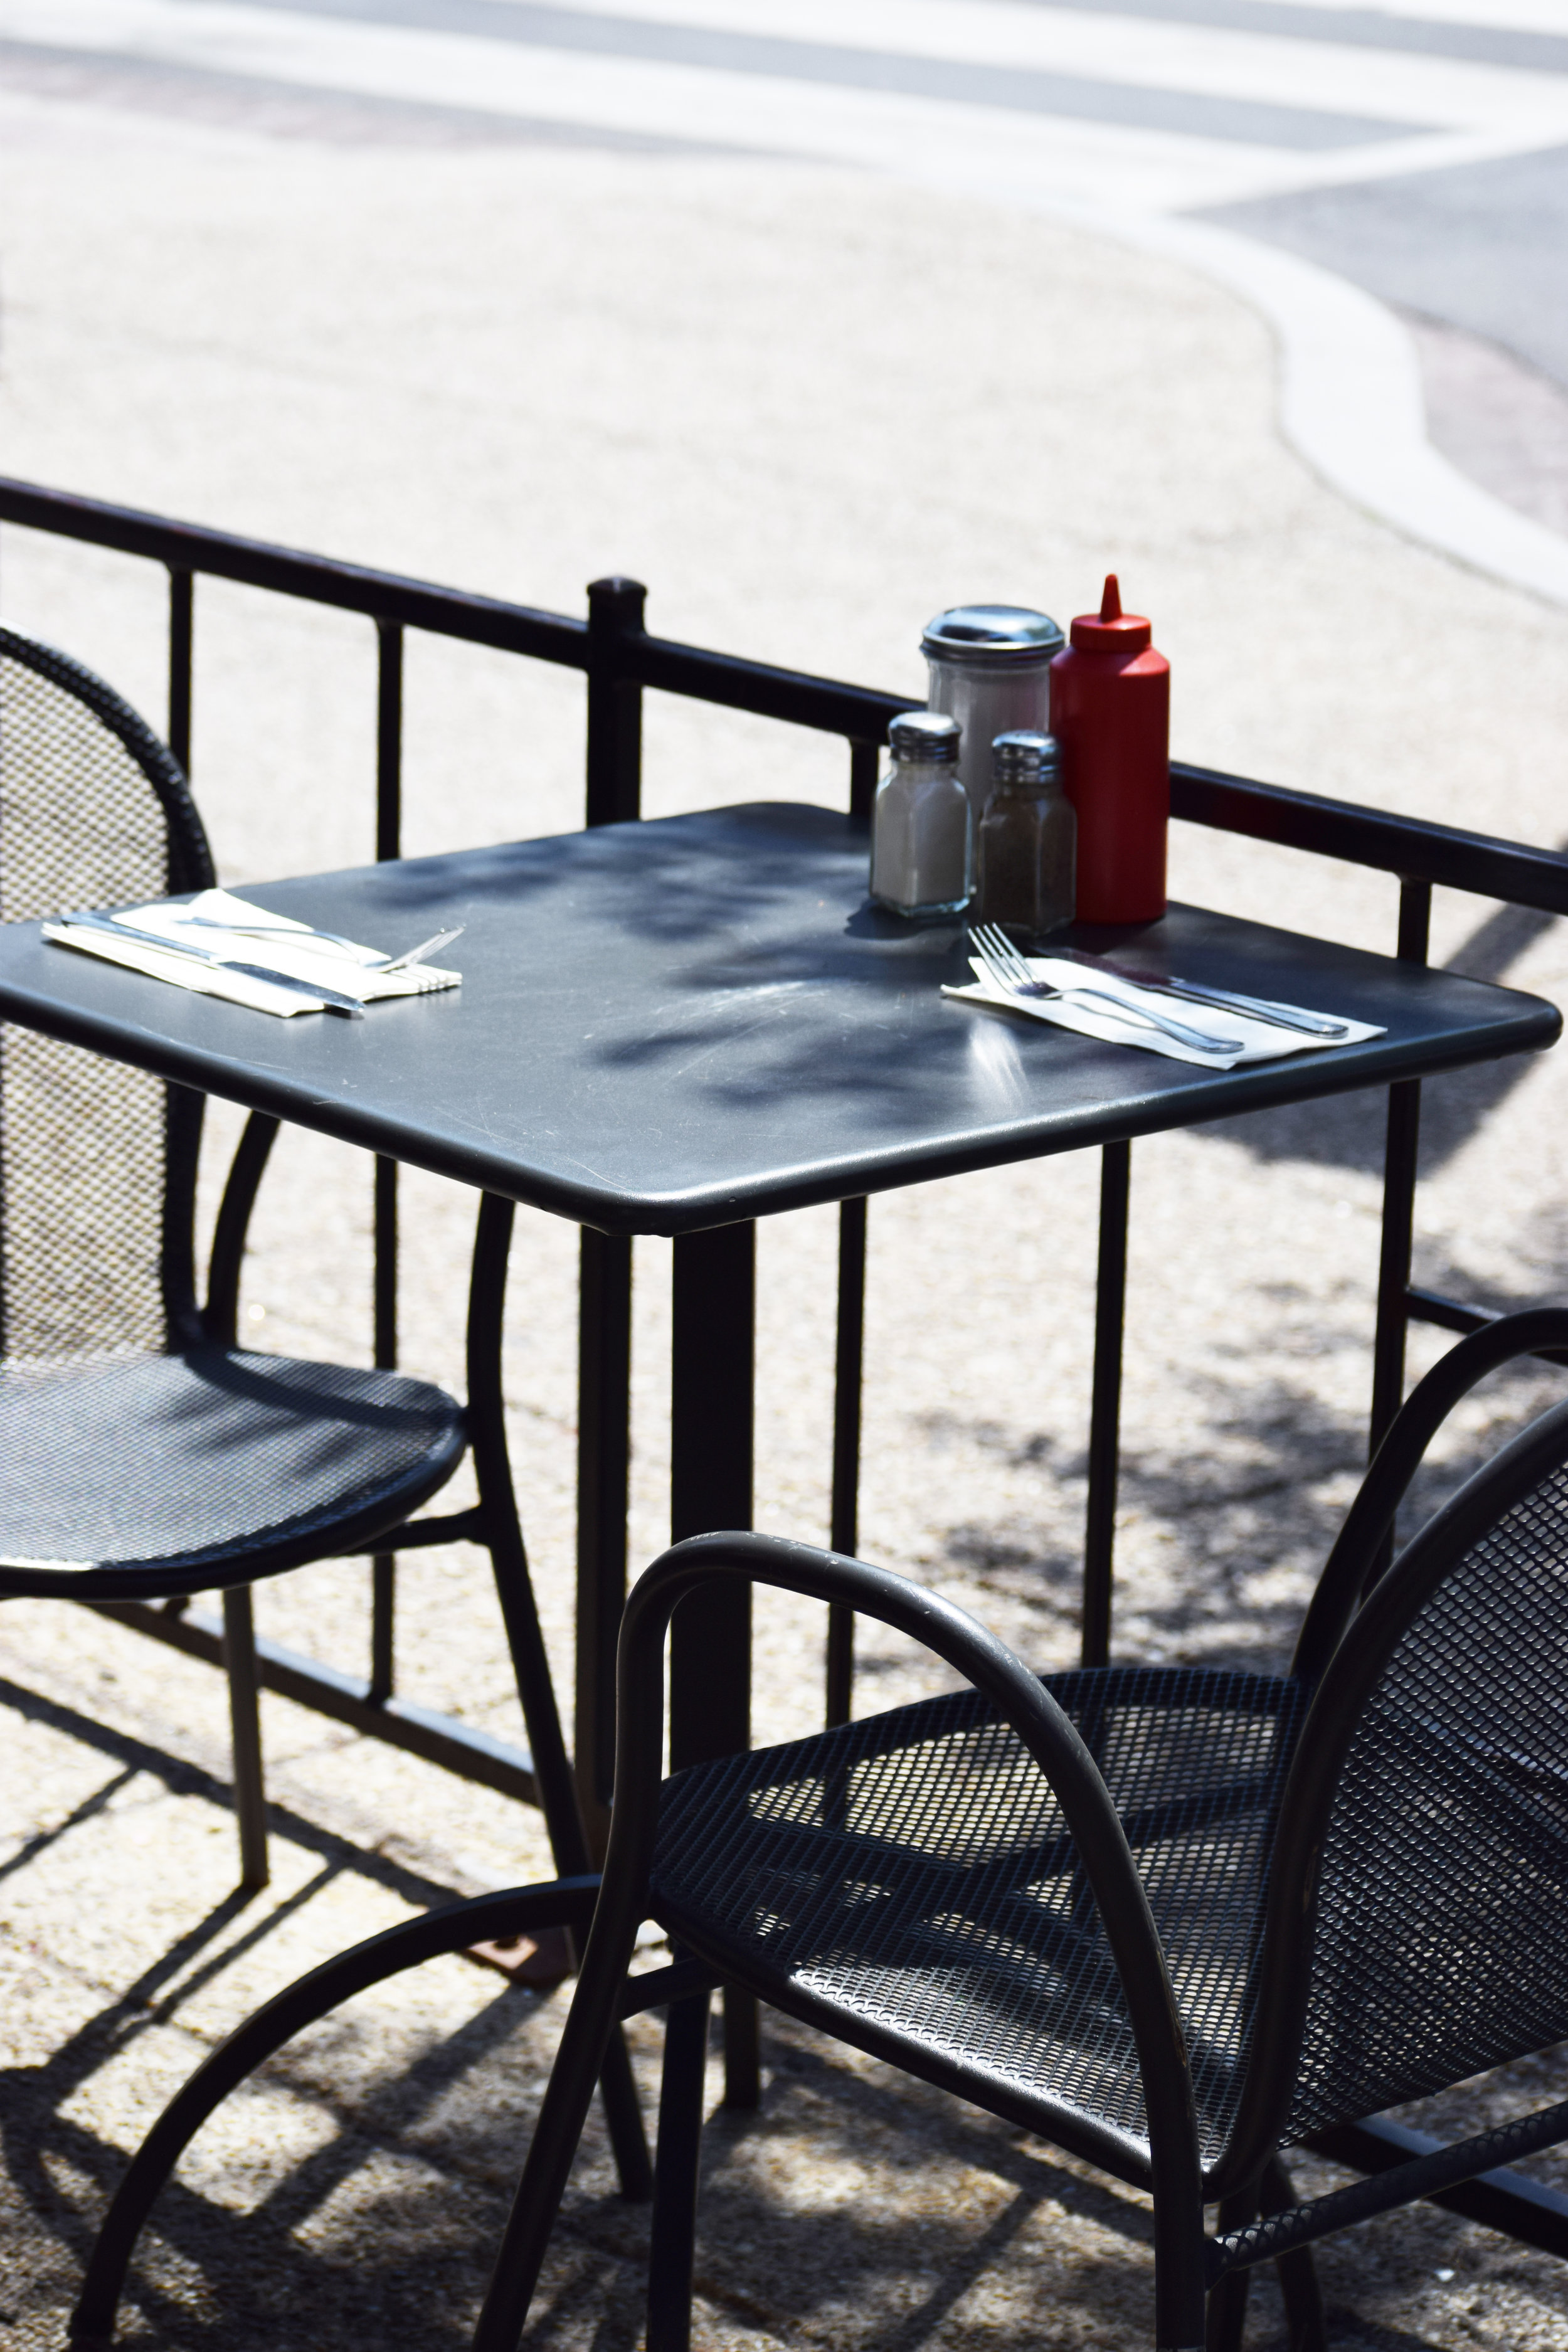 An empty table on the patio with cutlery and sauces